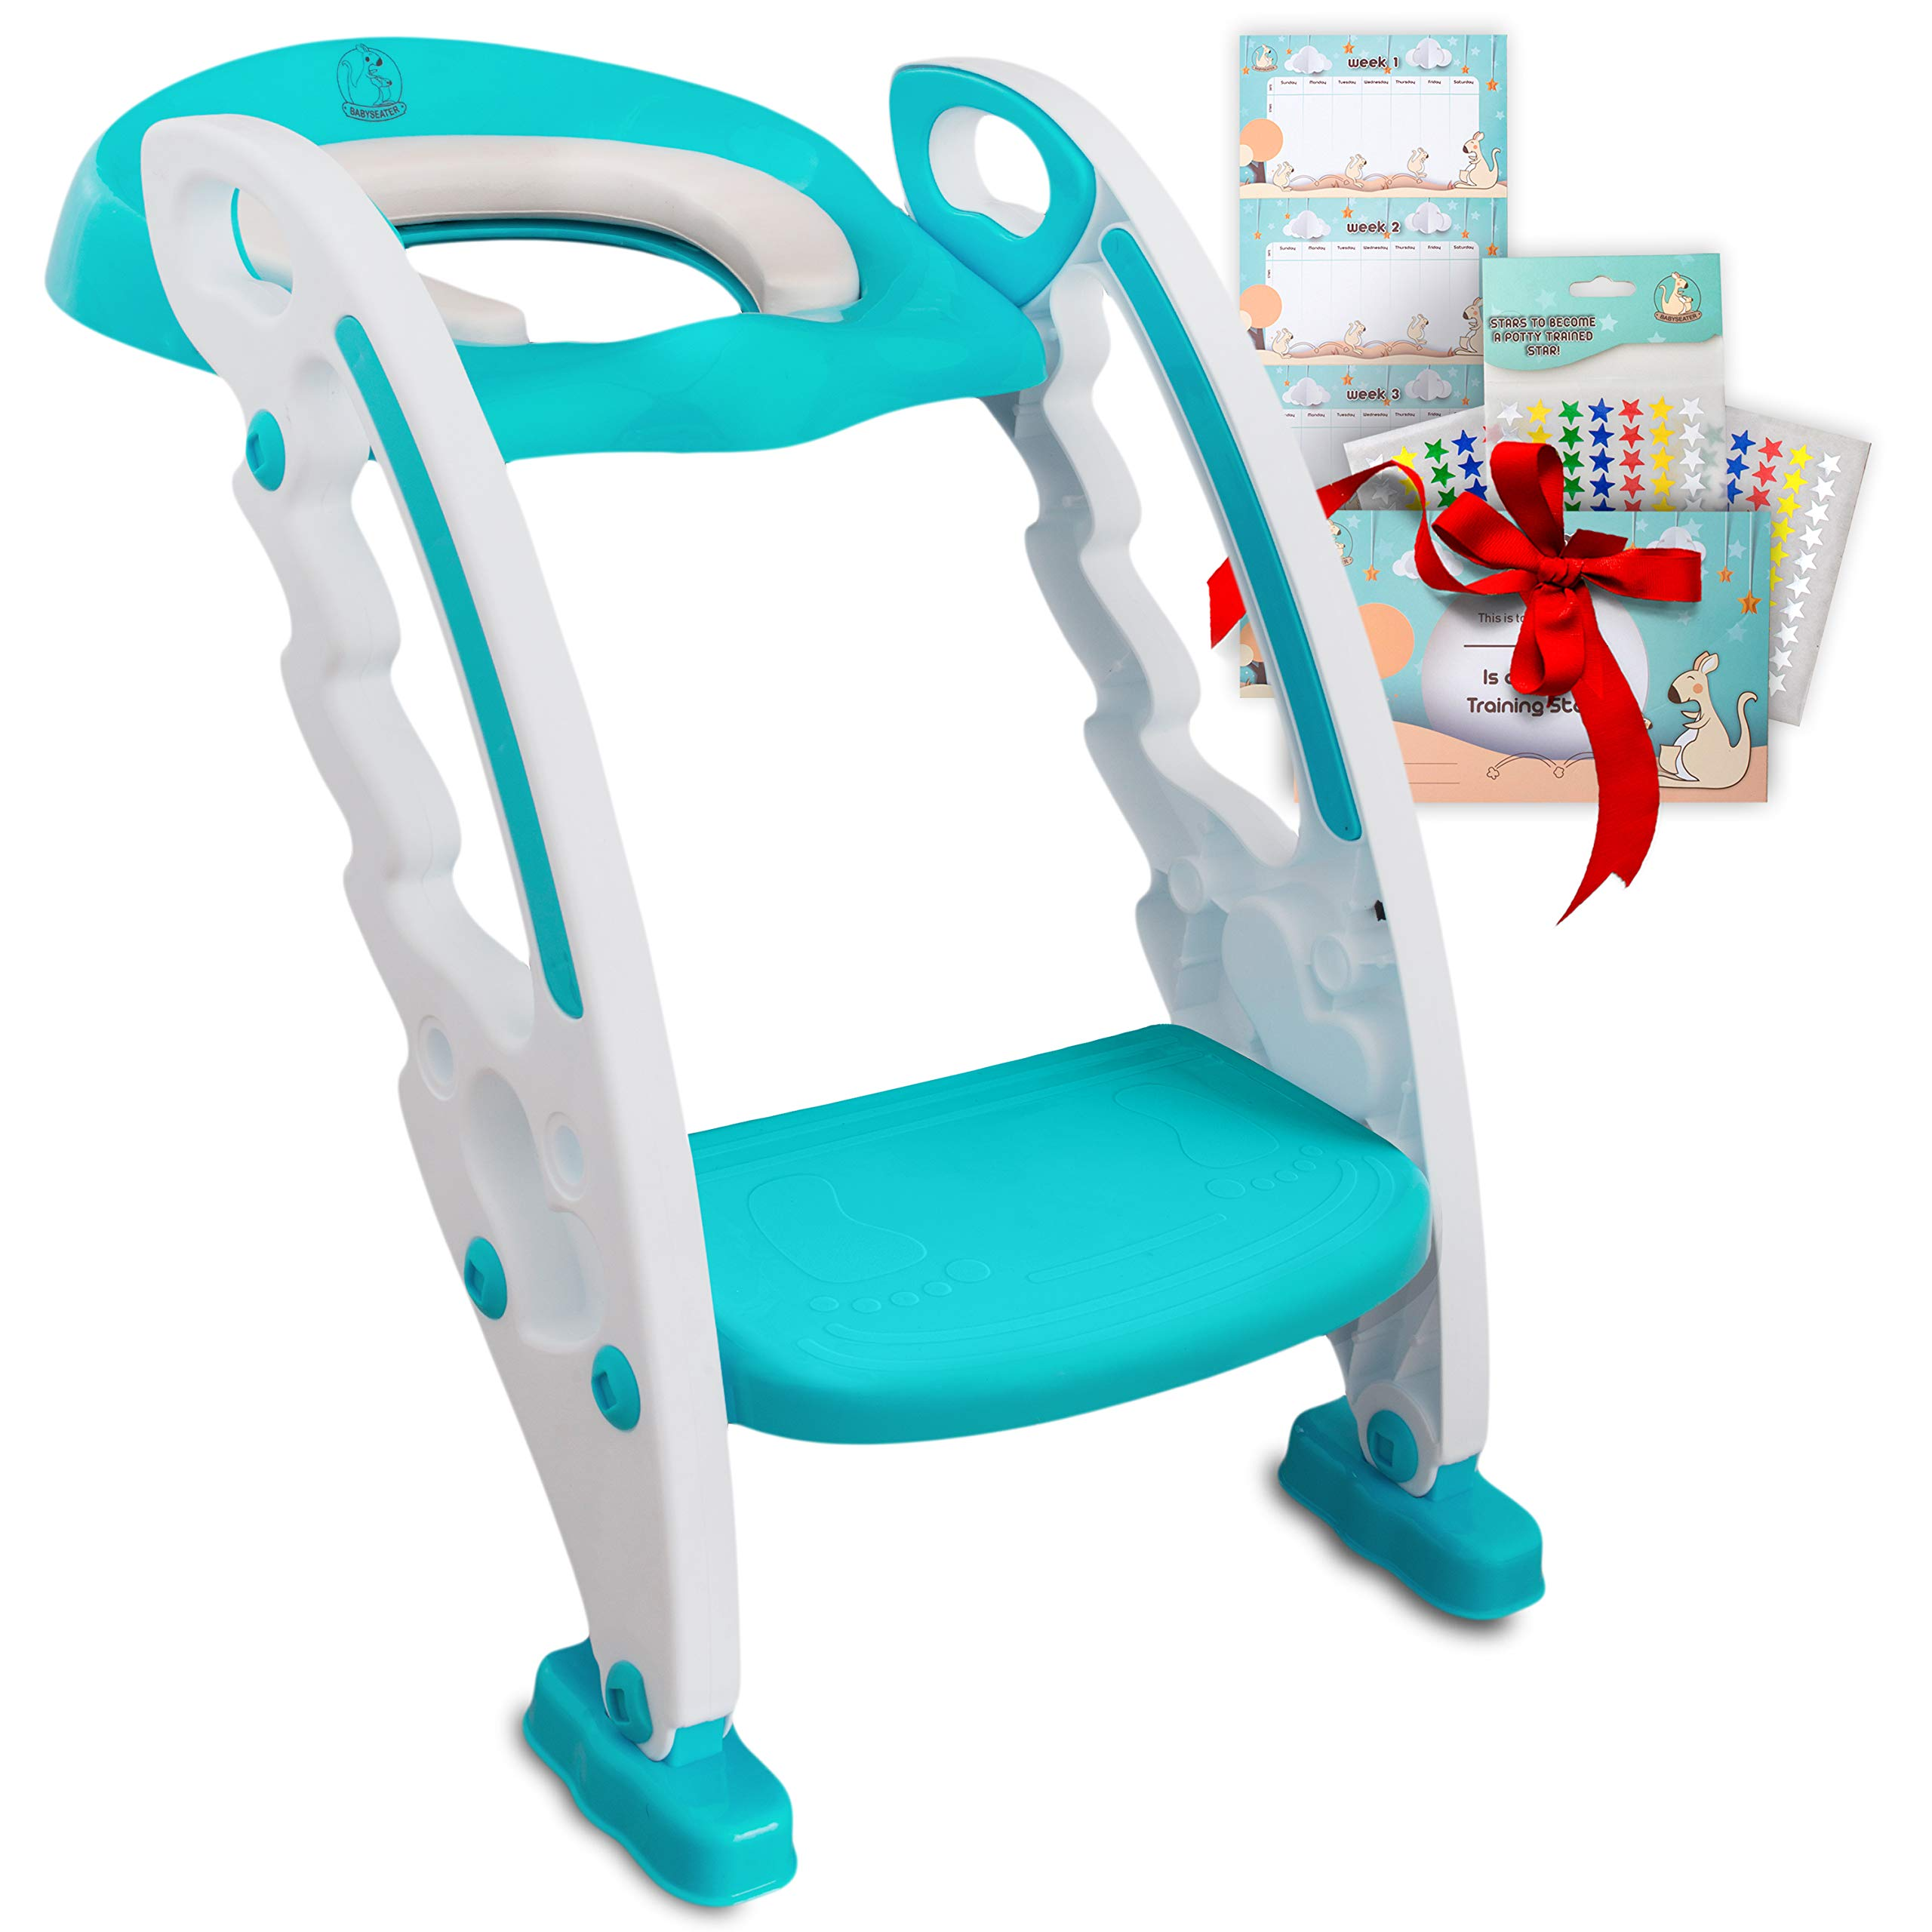 Toilet Training Seat for Toddlers - Adjustable Stair Potty Seat with Ladder & Handles for Standard 16'' Toilets - Kids Foldable Step Potty Chair with Anti-Slip Toilet Steps by BabySeater, Turquoise